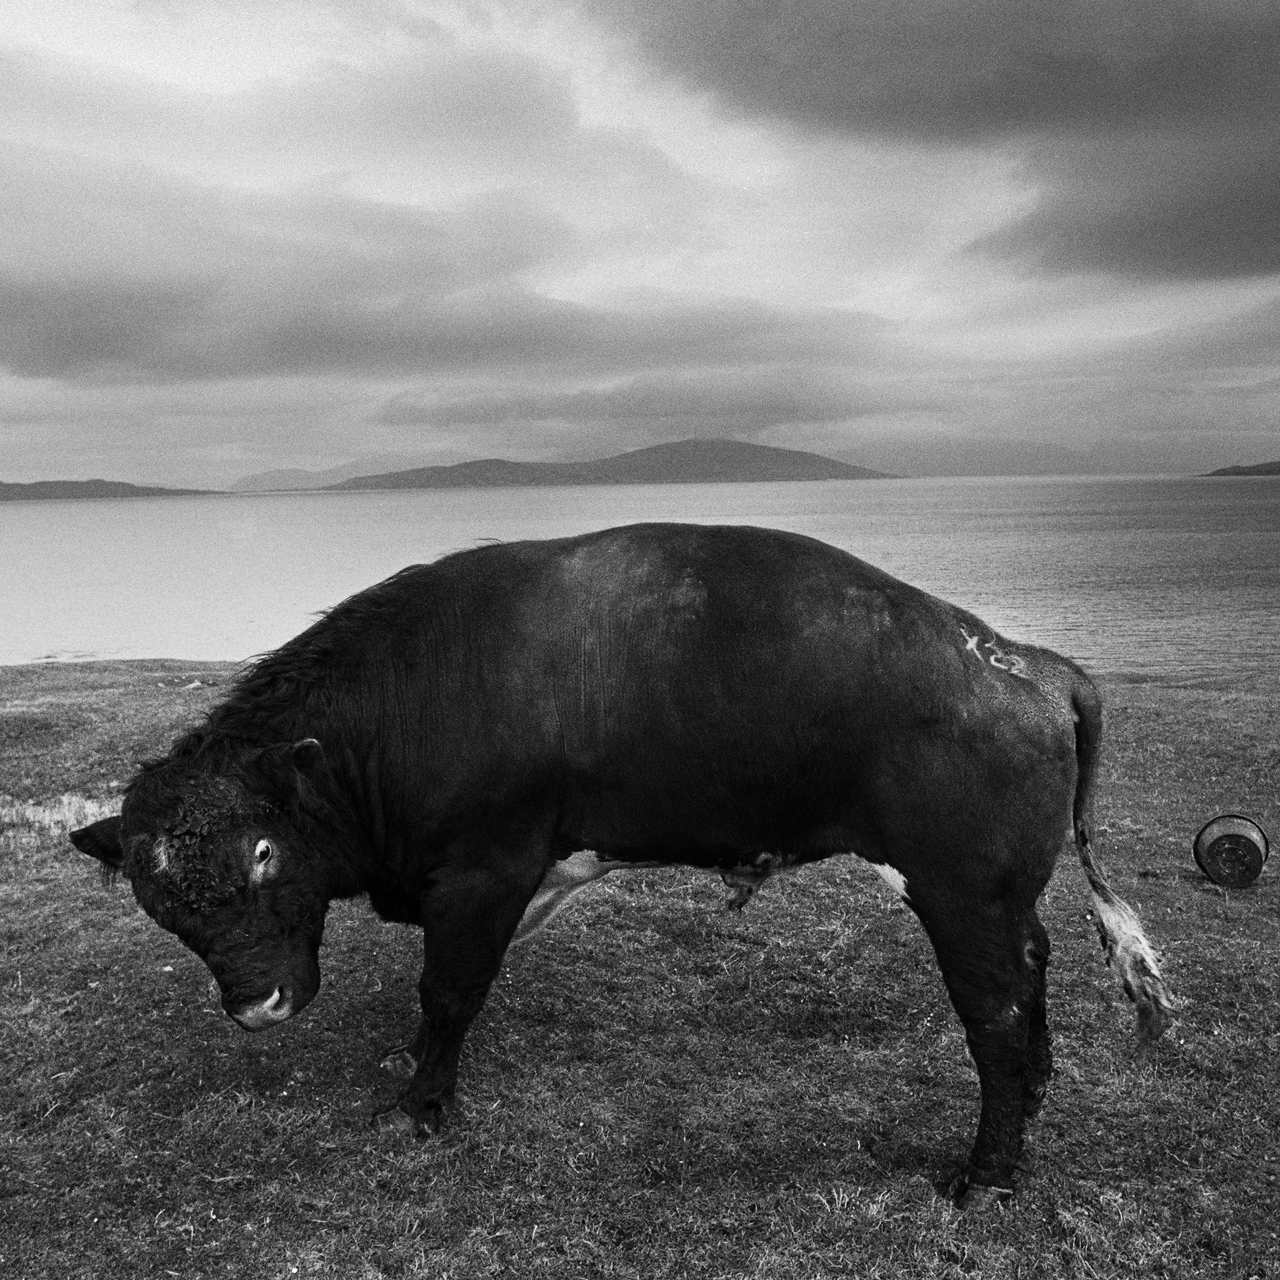 Image of The Scarista Bull, Isle of Harris (1979) by Oscar Marzaroli